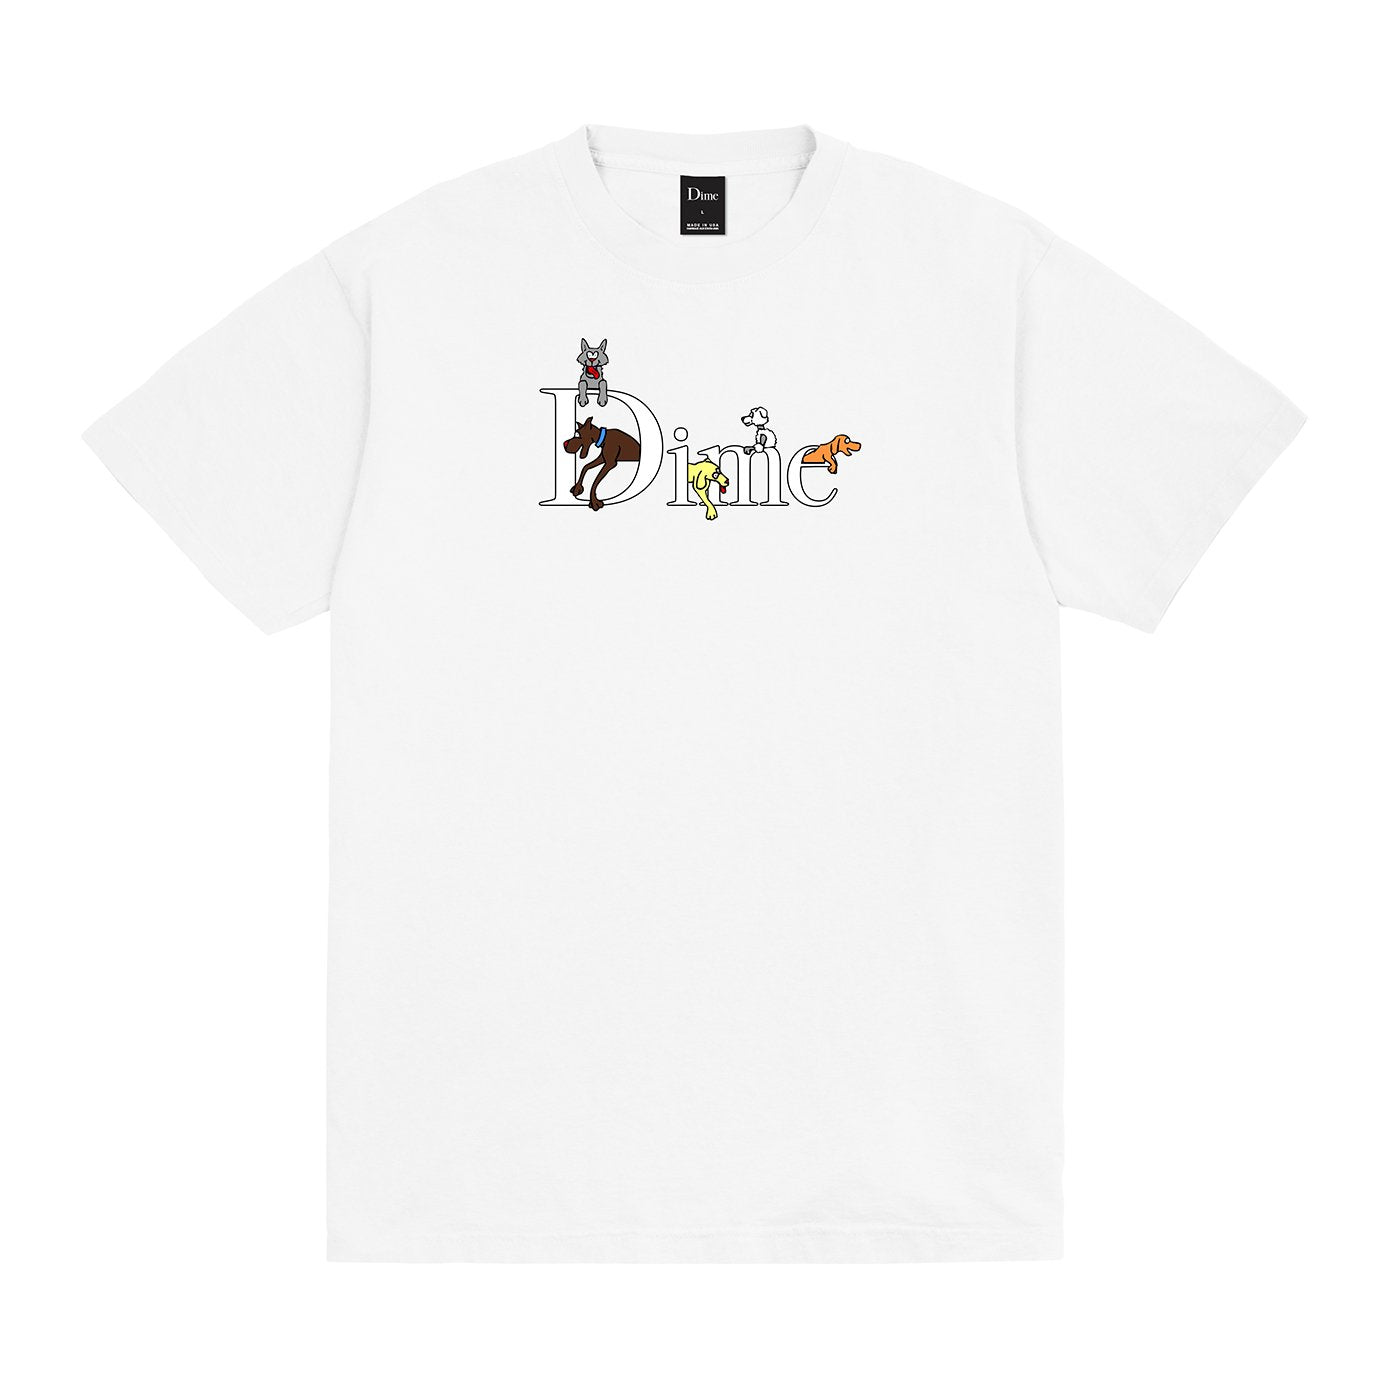 Dime Dog Classic Logo Tee Product Photo #1